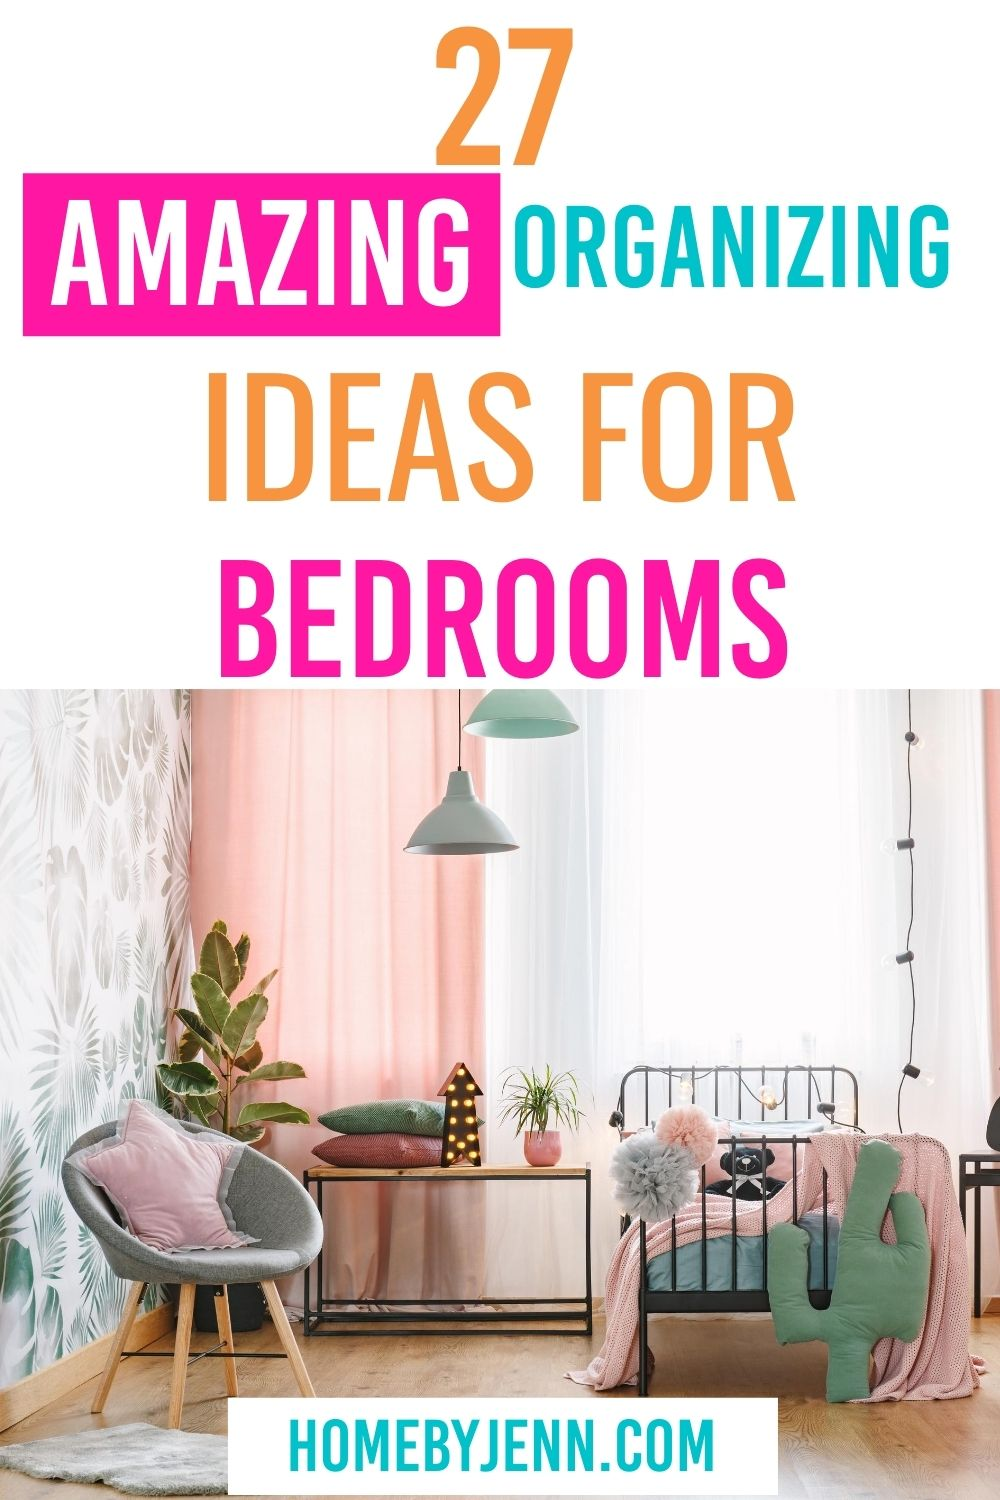 Become inspired to organize every bedroom in your home with these bedroom organizing ideas. They are simple to implement and many of them are budget-friendly. via @homebyjenn